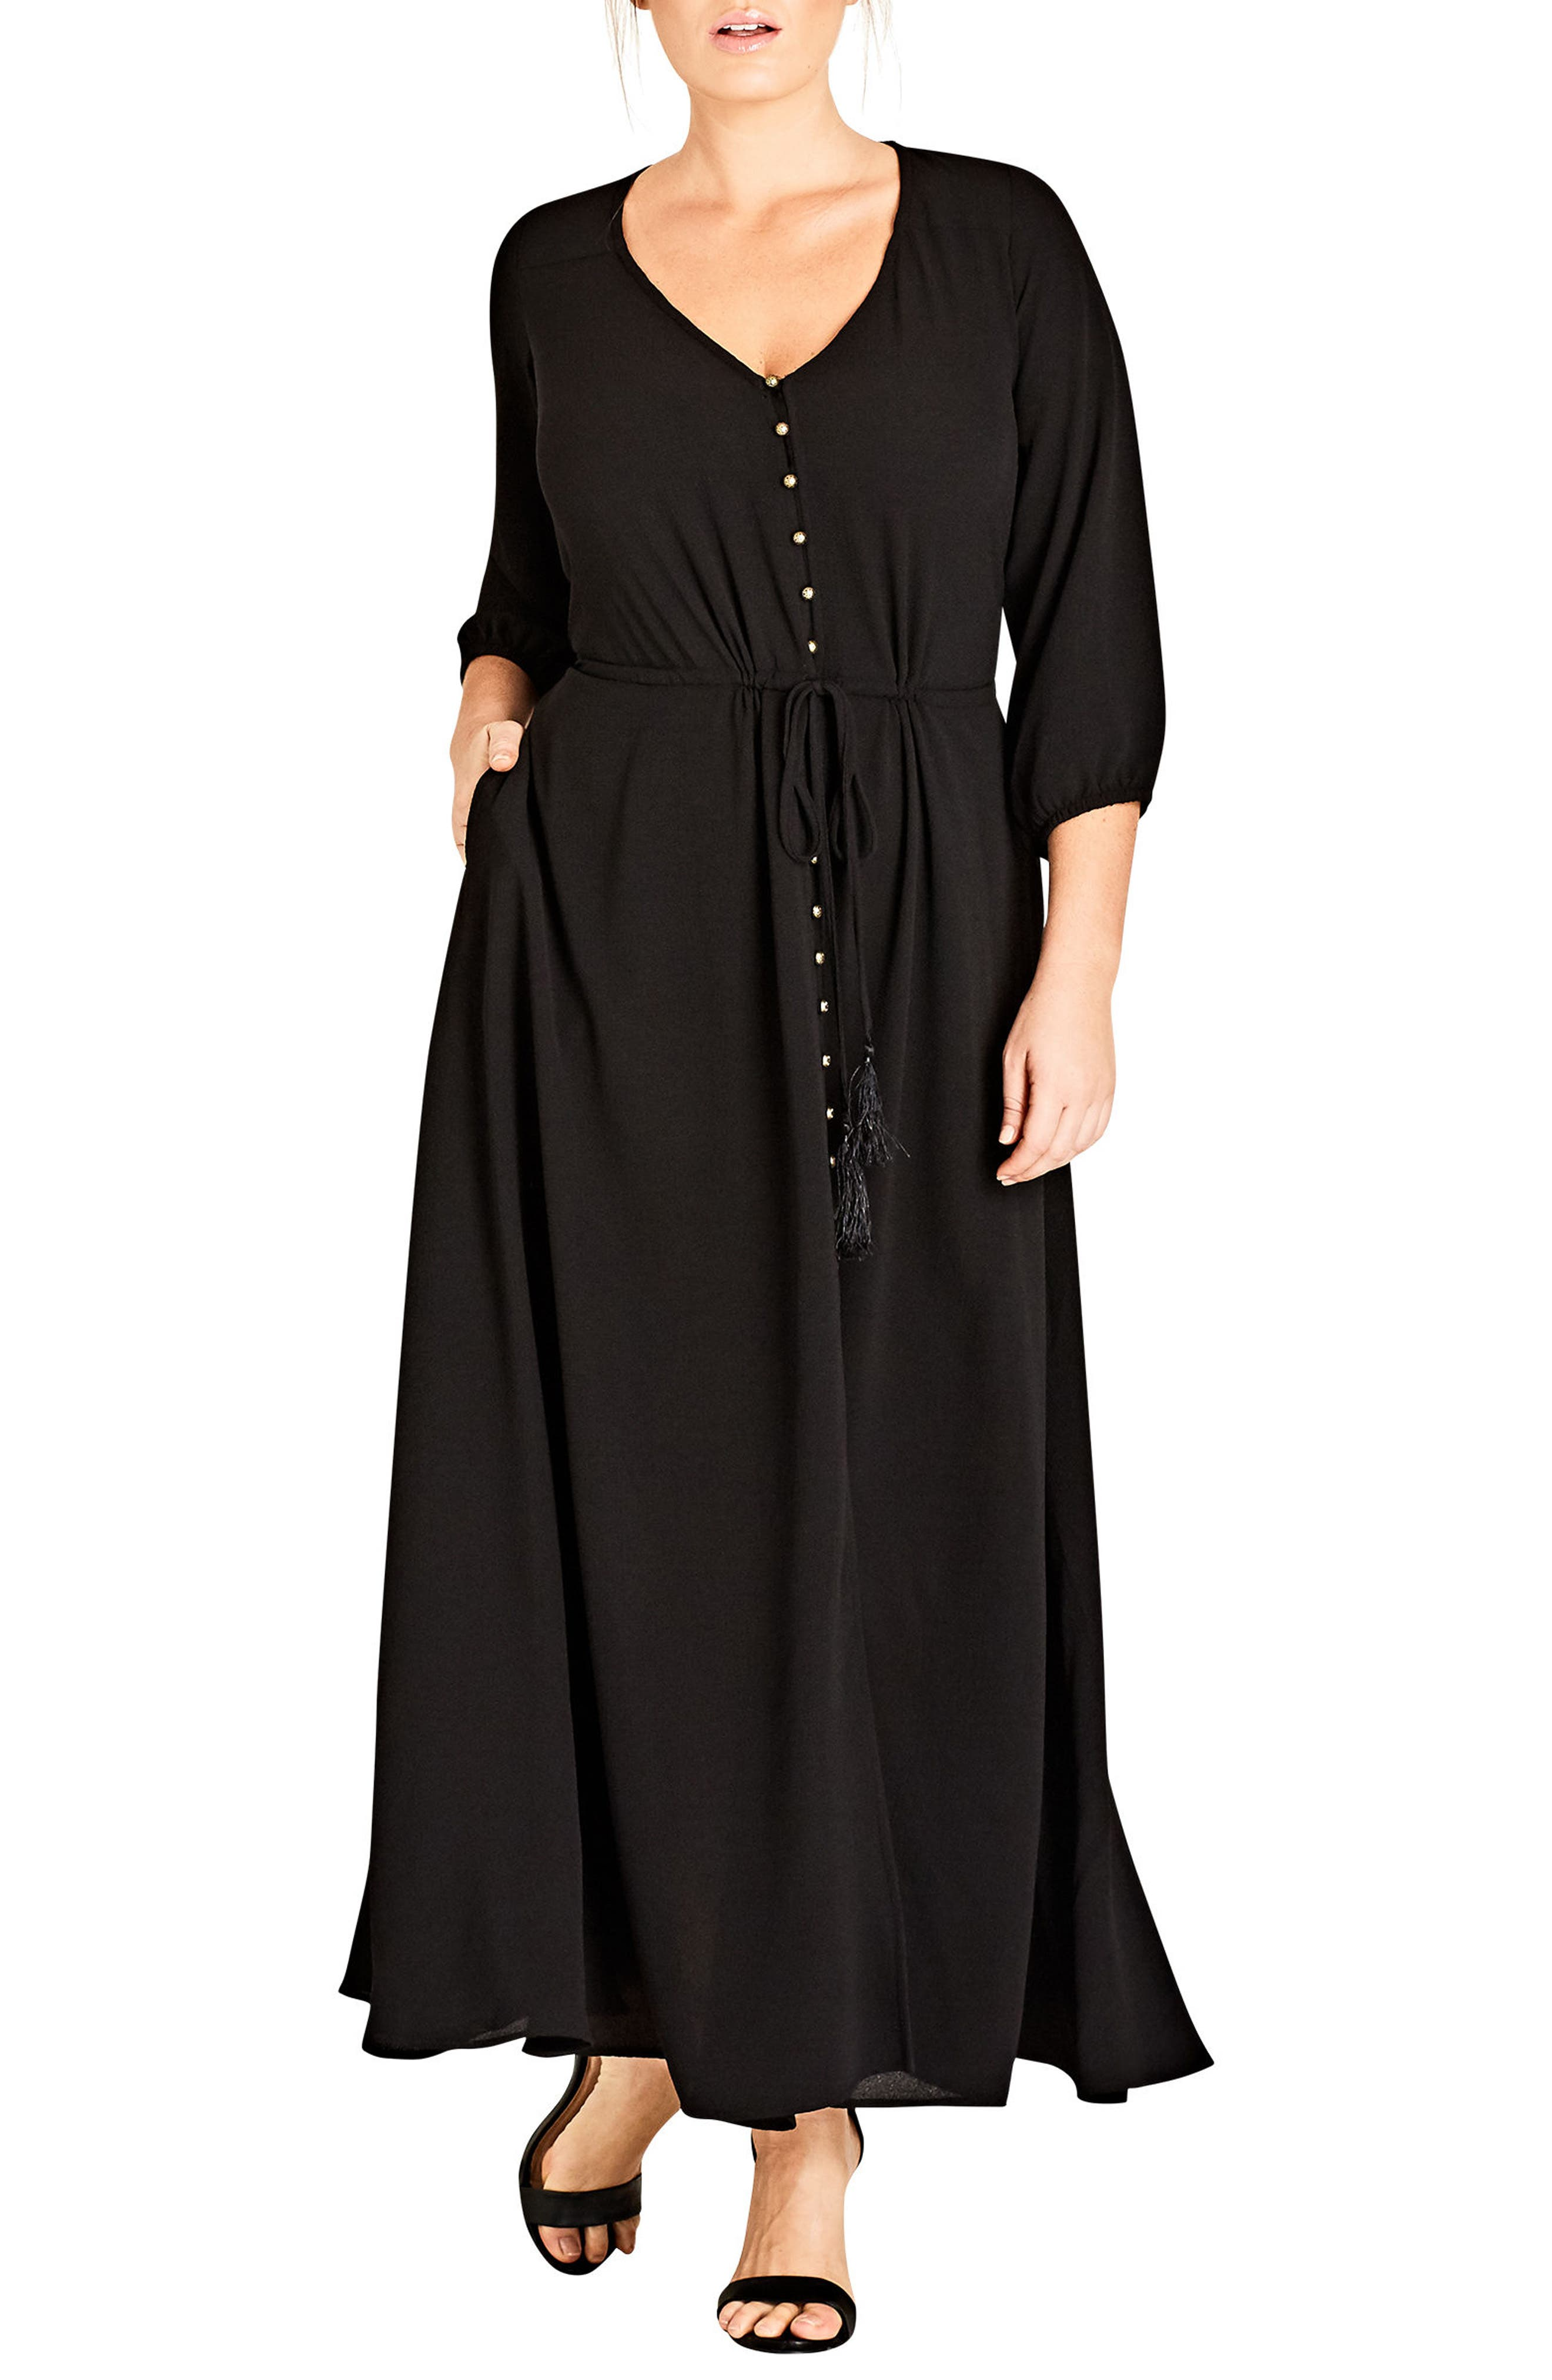 Alternate Image 1 Selected - City Chic Simple Texture Maxi Dress (Plus Size)